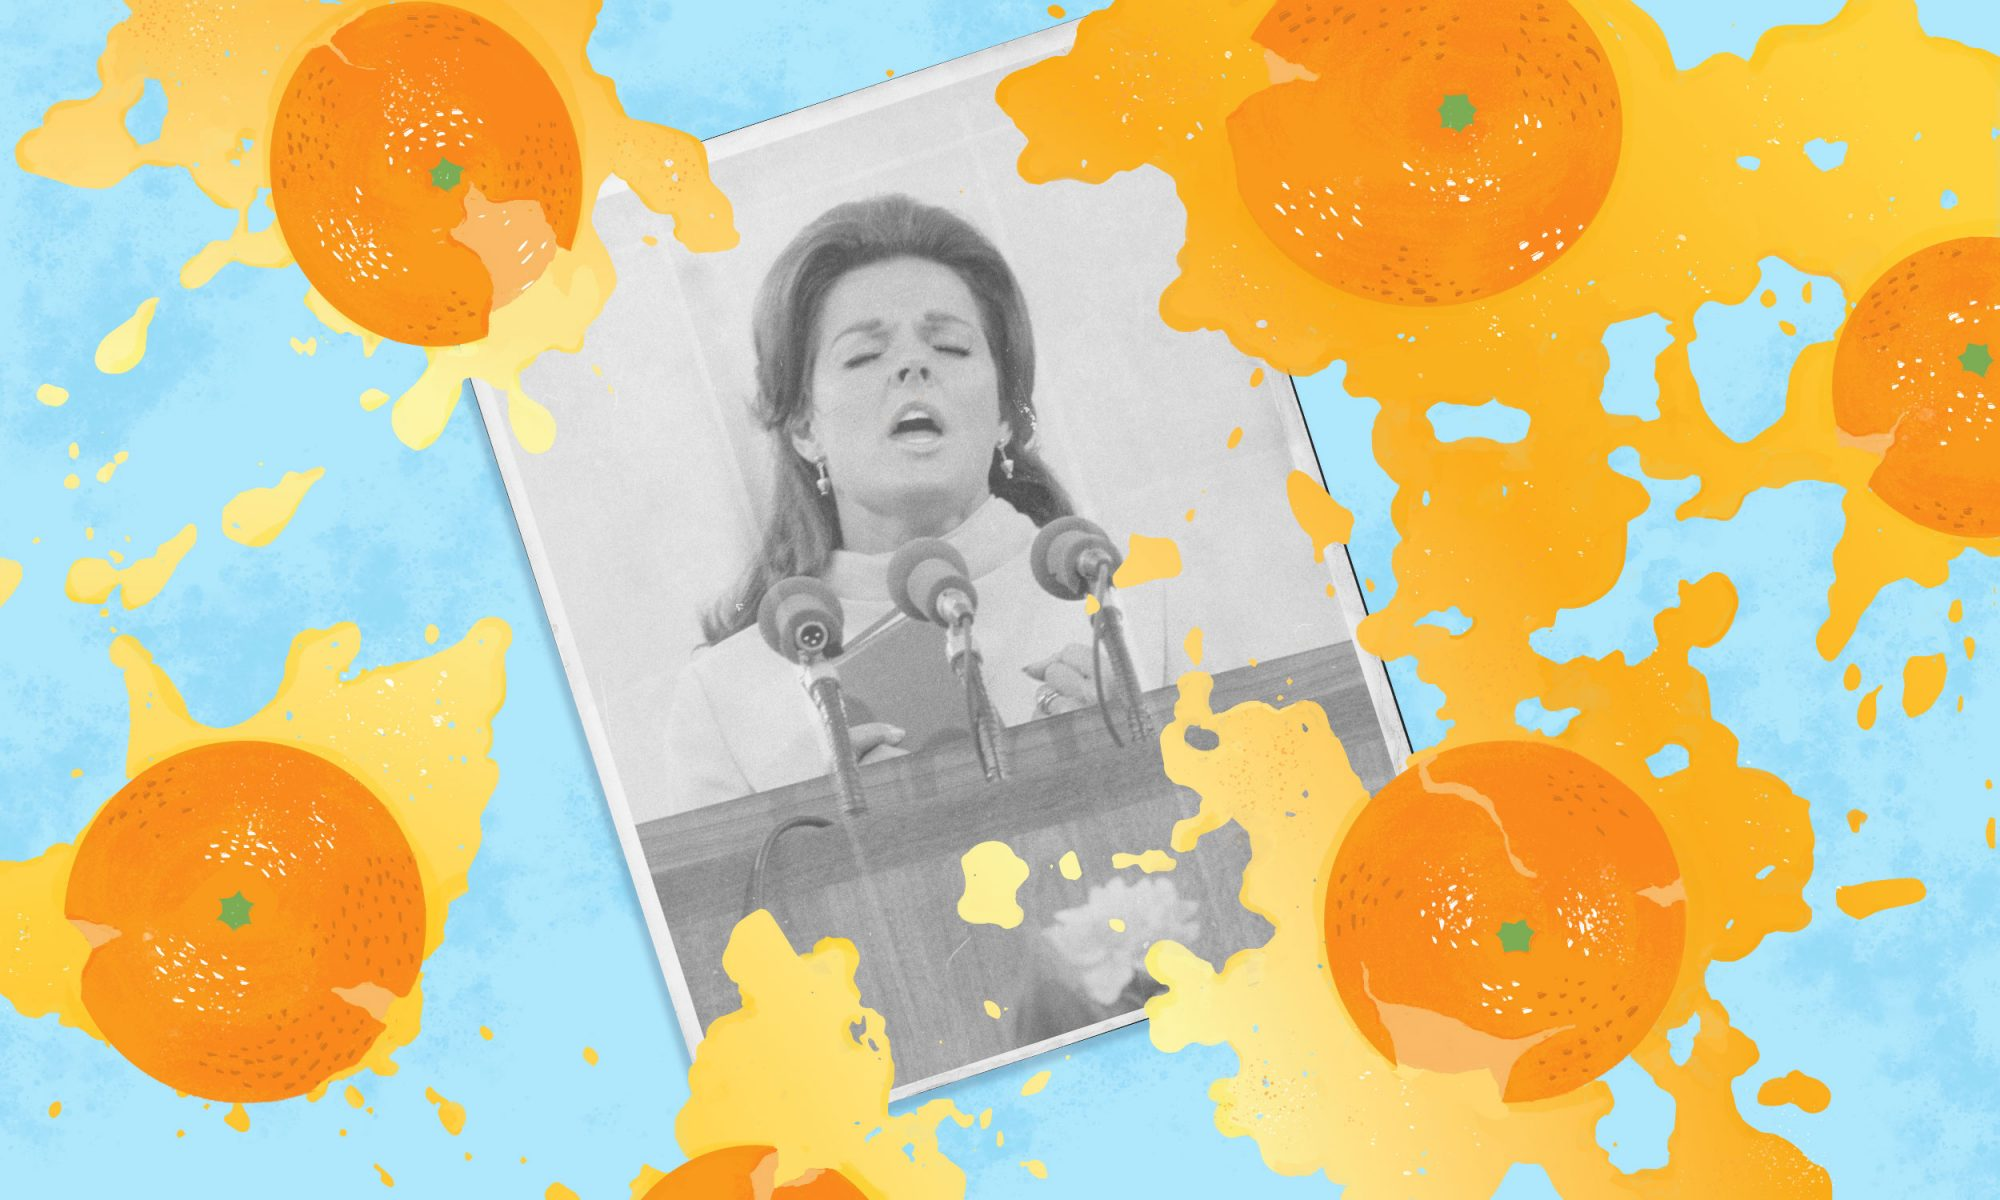 EC:  assets%2Fmessage-editor%2F1482347233909-anita-bryant-orange-juice-hero-illo